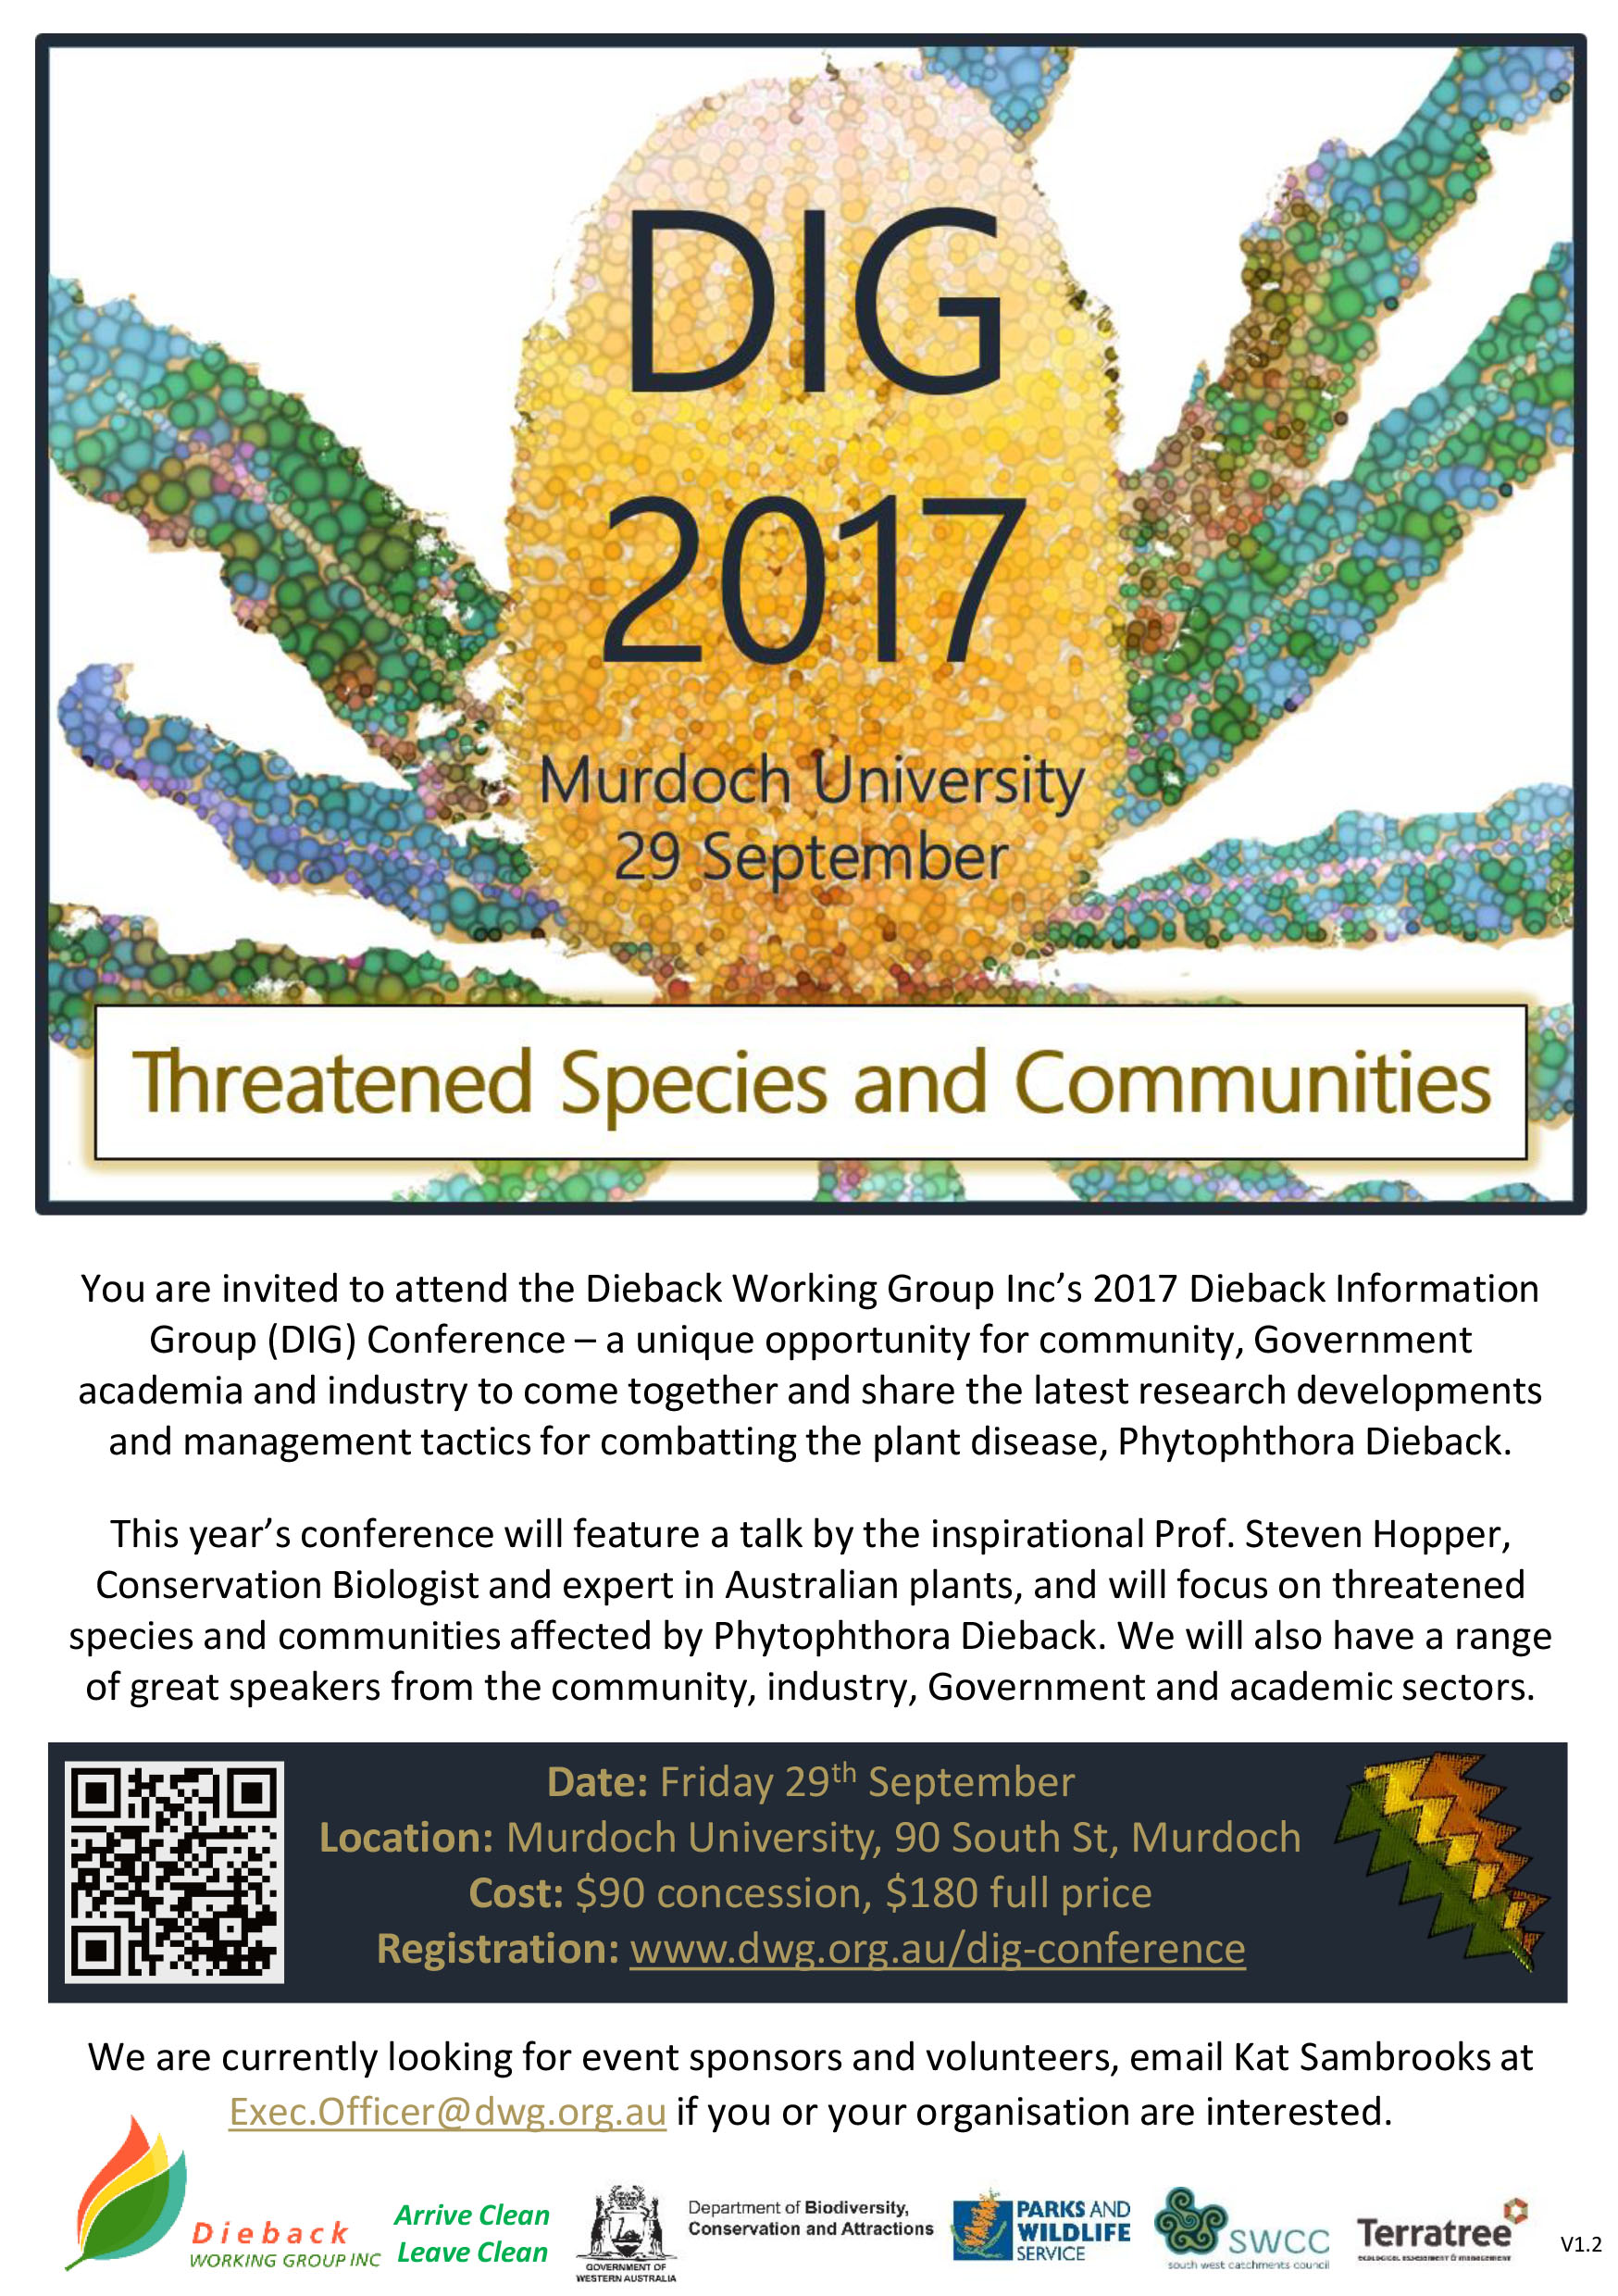 DIG Conference 2017 A5 flyer